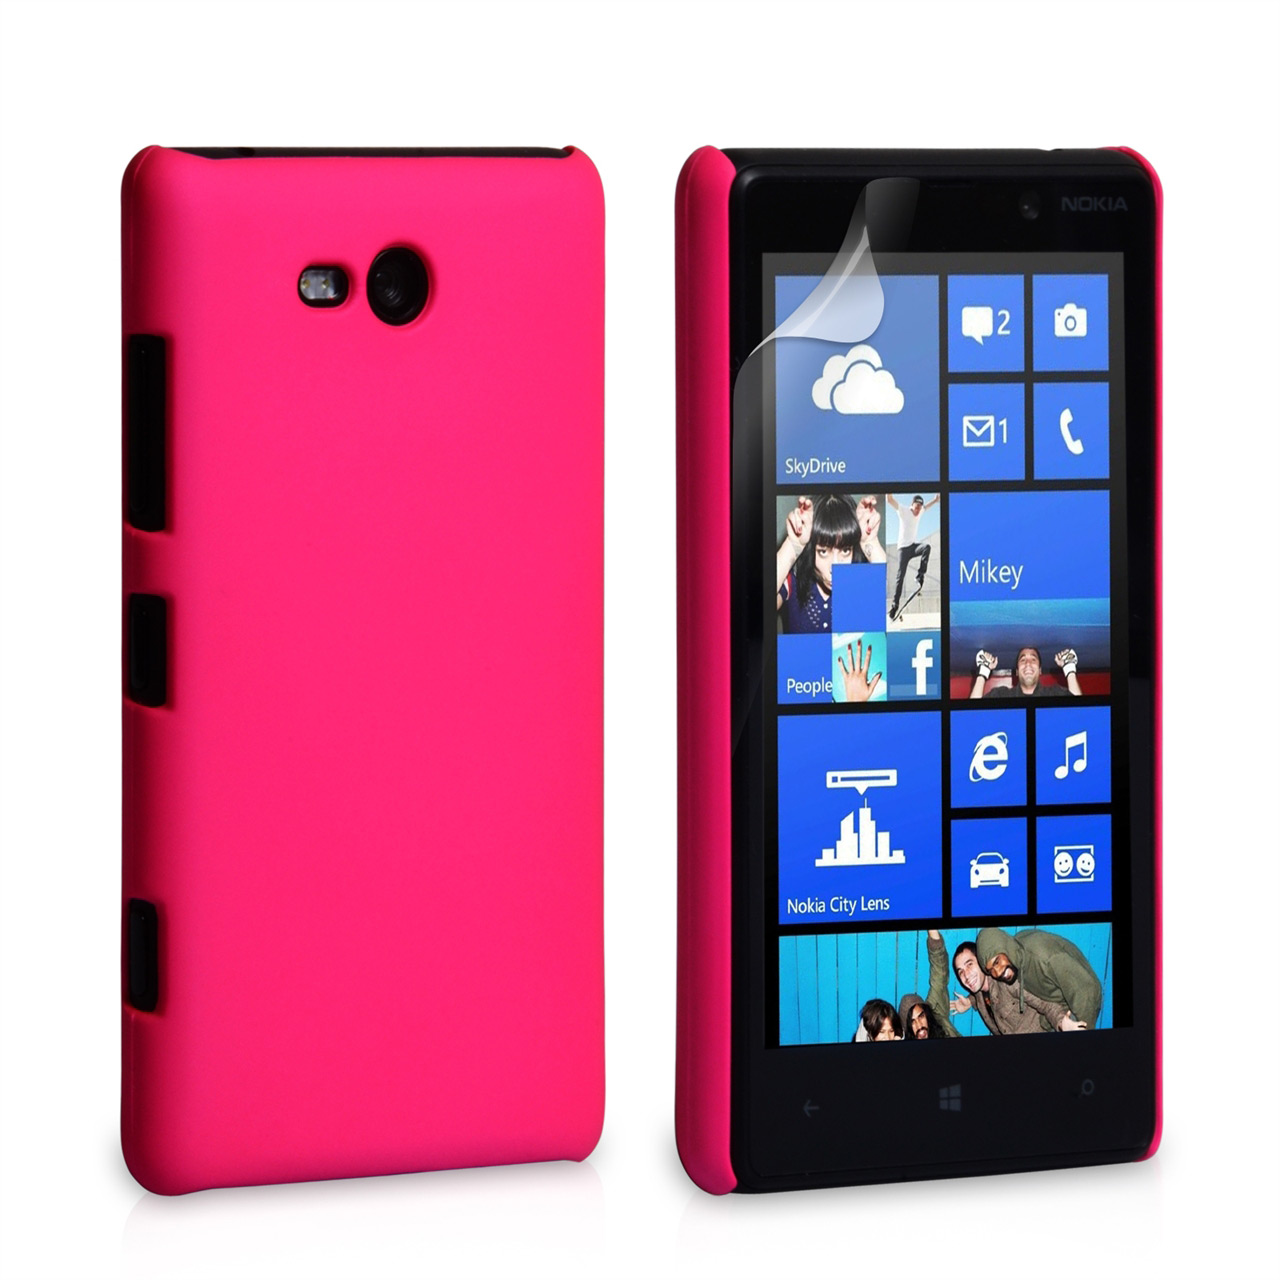 YouSave Accessories Nokia Lumia 820 Hybrid Hard Case - Hot Pink